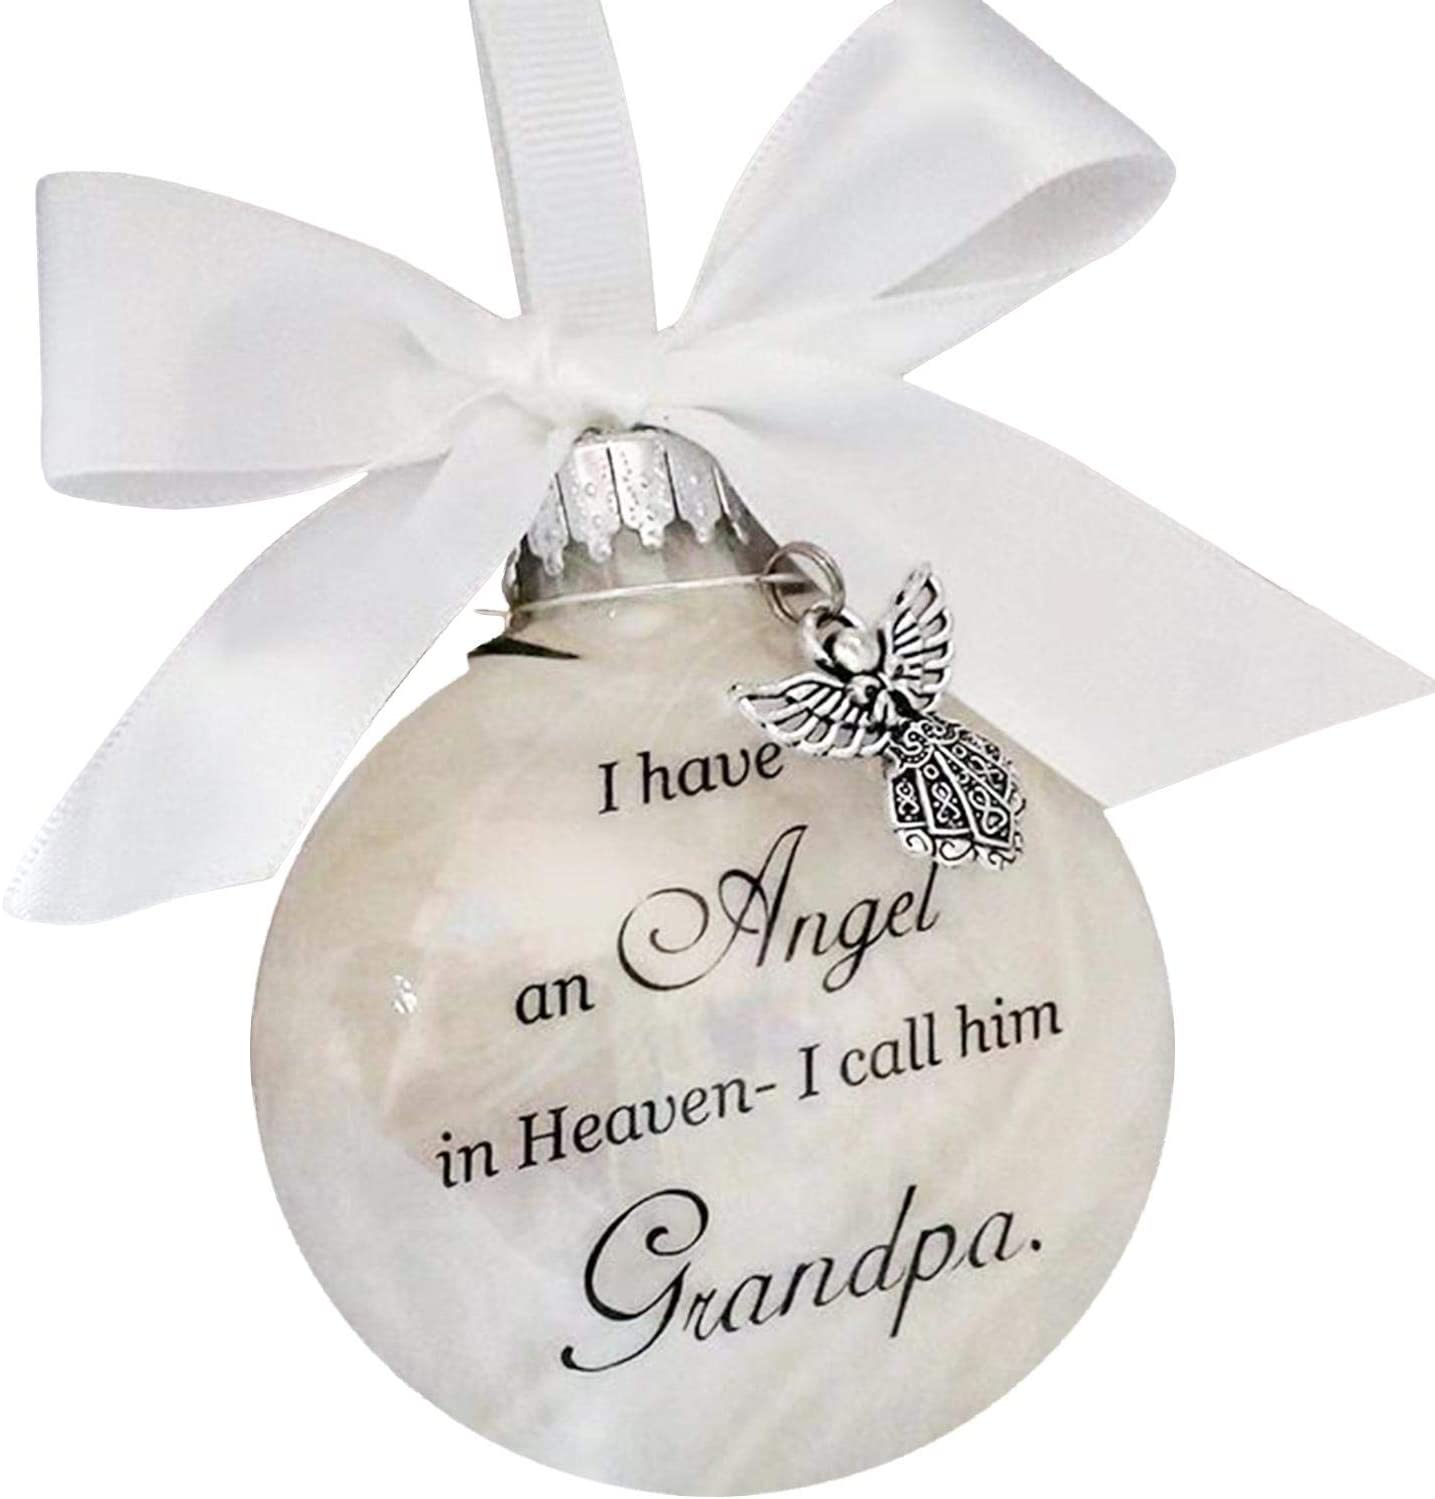 He Forever in Our Heart Angels in Heaven Memorial Ornament for Loss of Dad Christmas Ornament Feather Ball I Have an Angel in Heaven I Call Him Dad